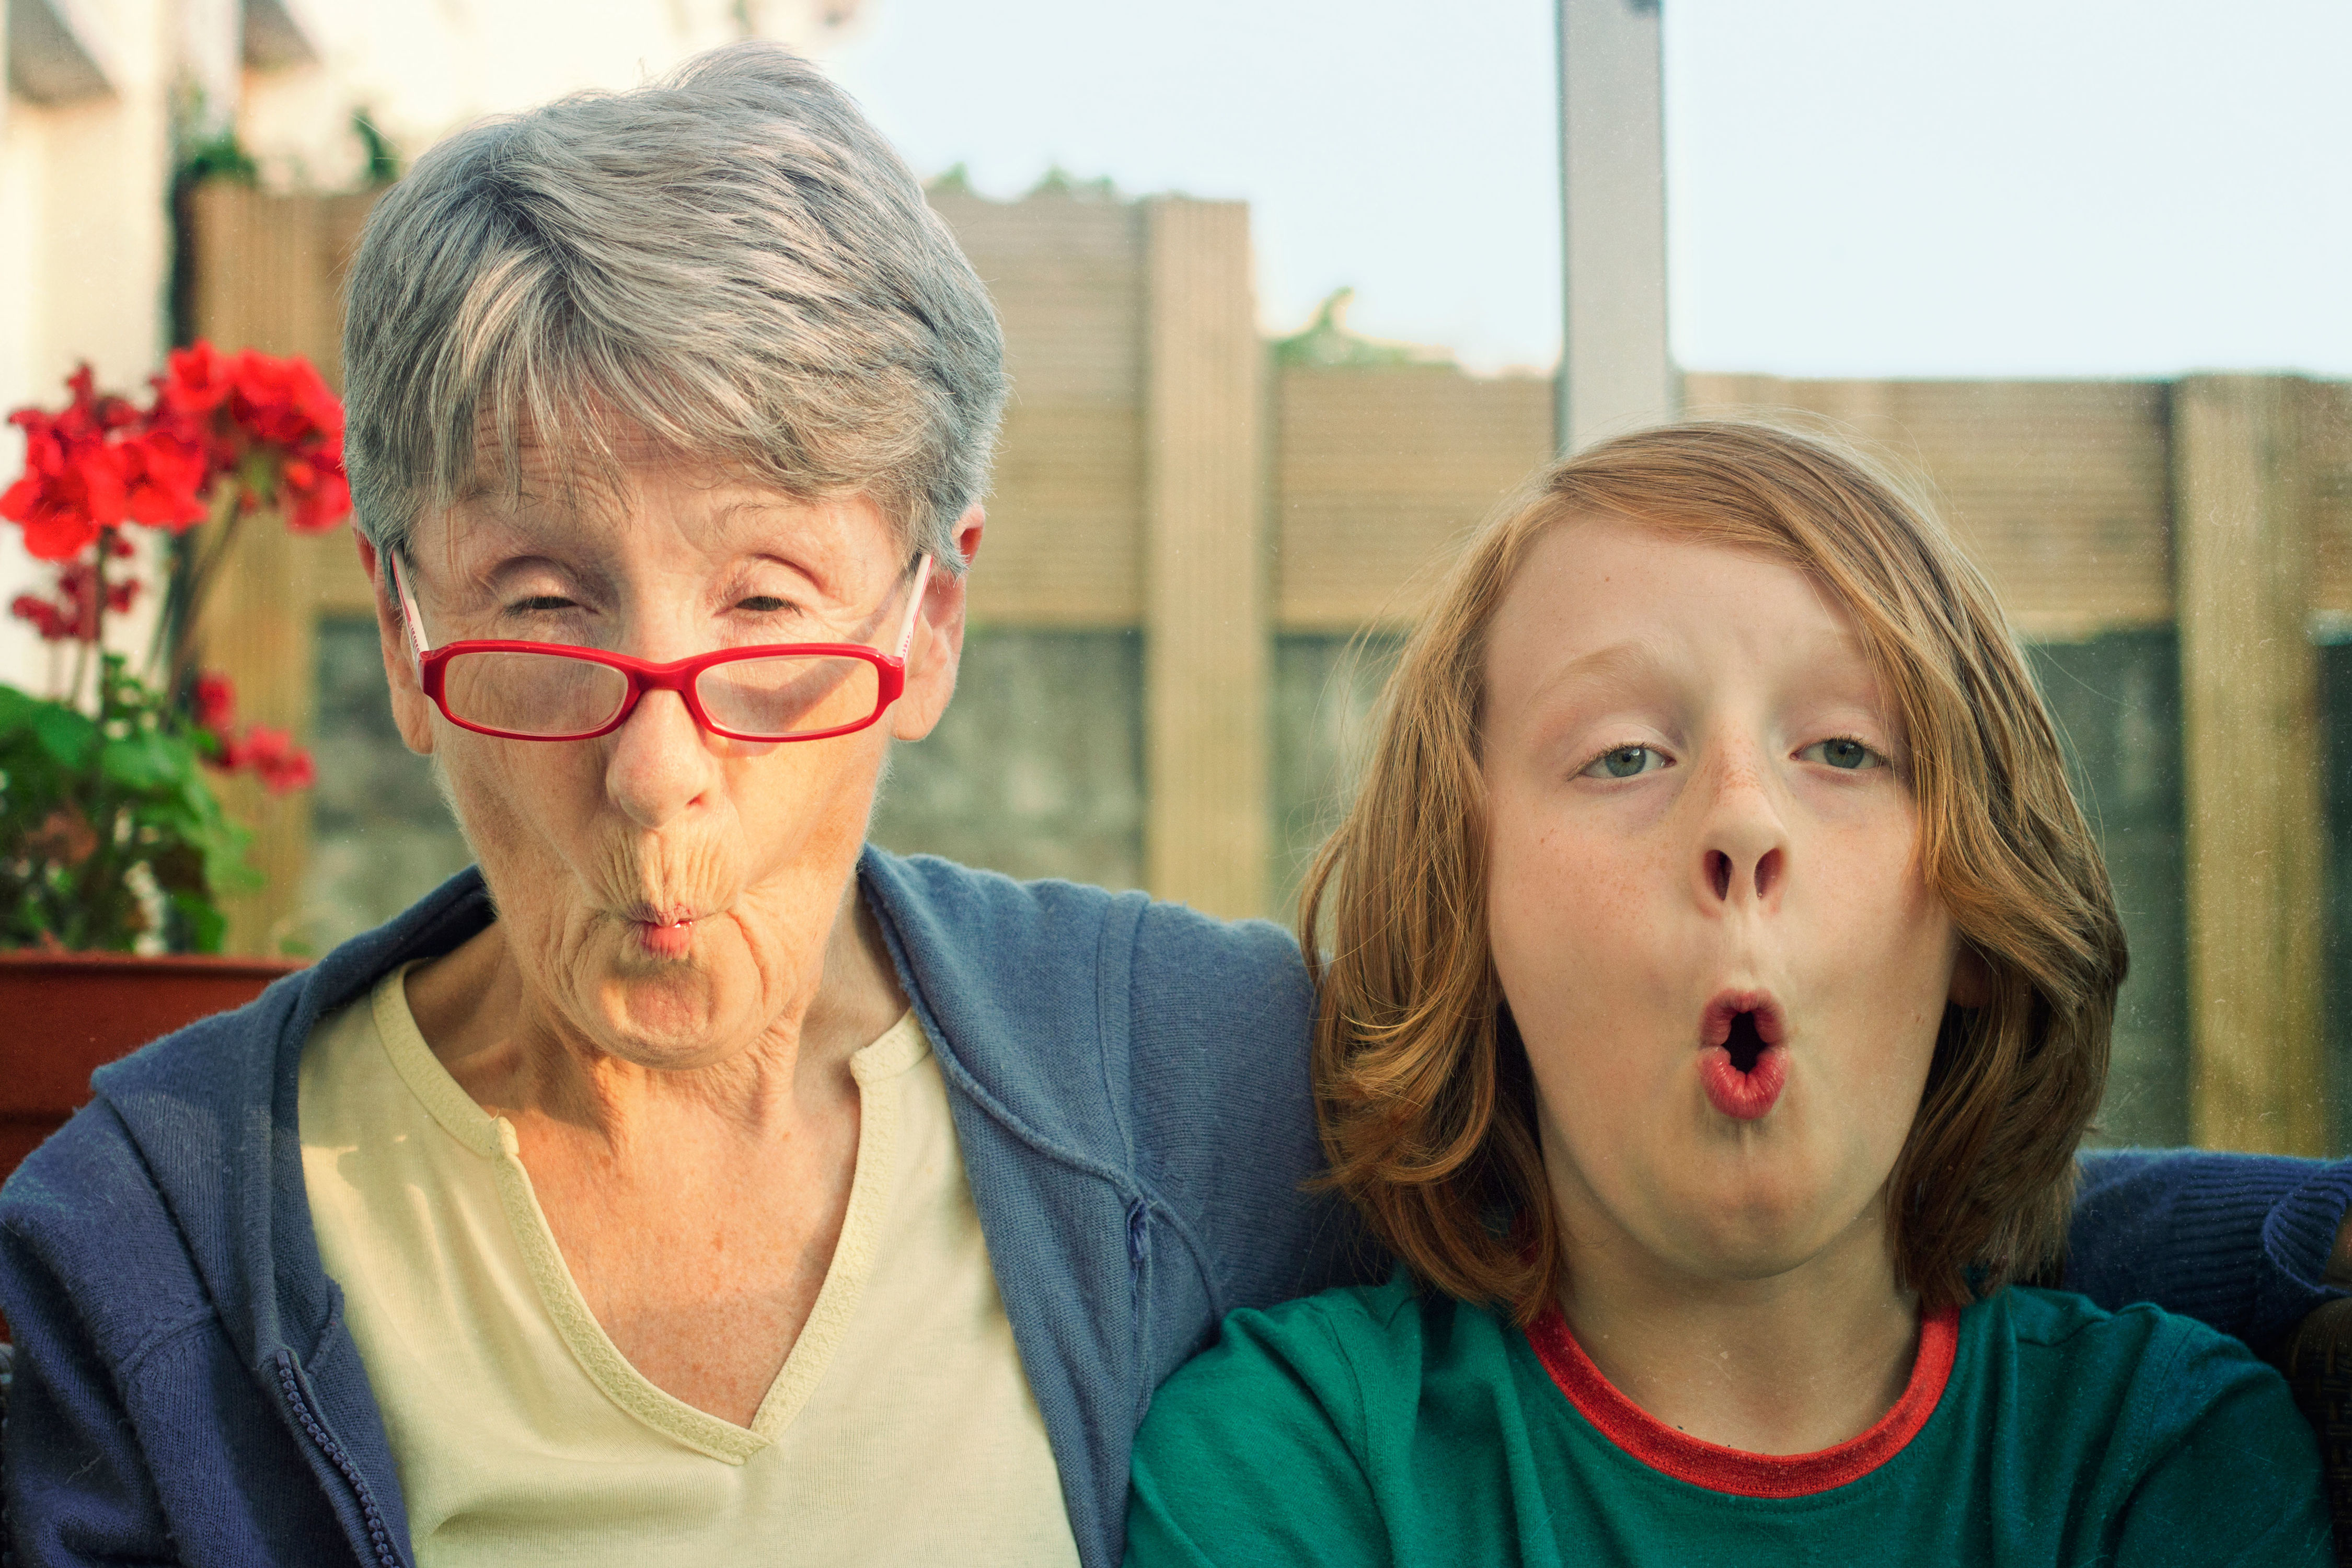 Most Grandparents Are Guilty of Spoiling Kids with This Activity, Research Says